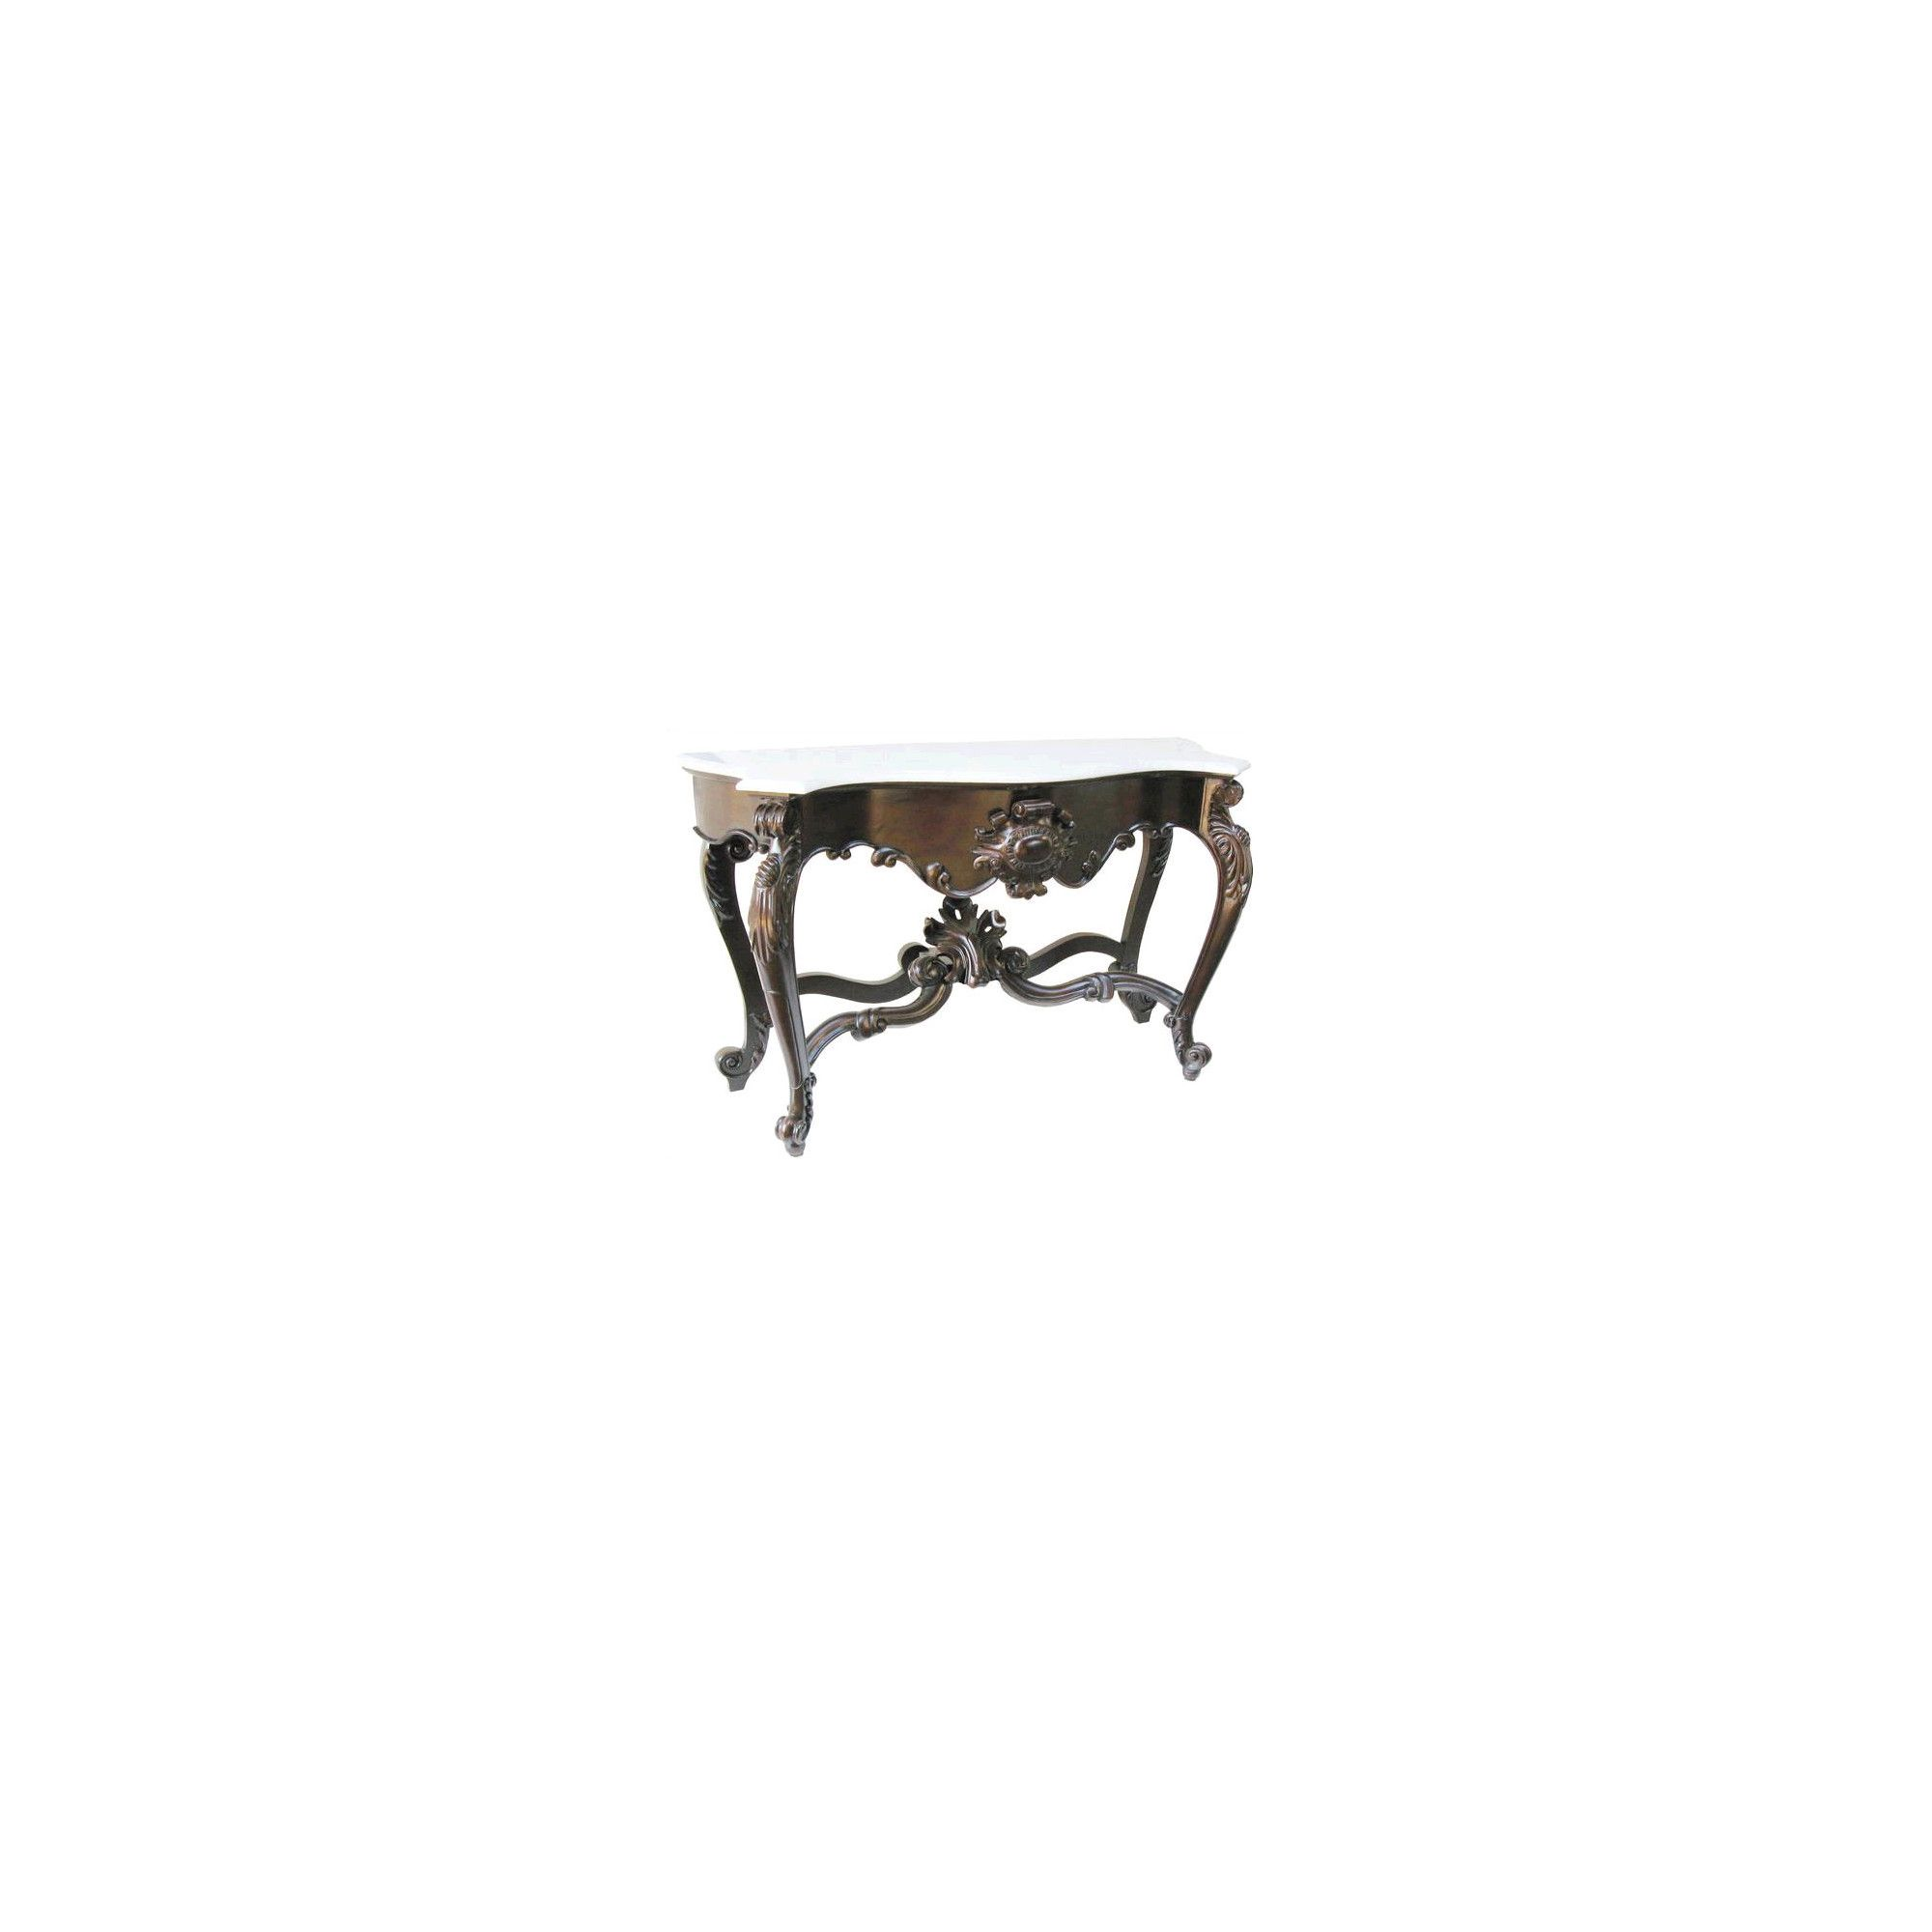 Lock stock and barrel Mahogany Marble Topped Carved Shell Console Table in Mahogany - Wax at Tesco Direct